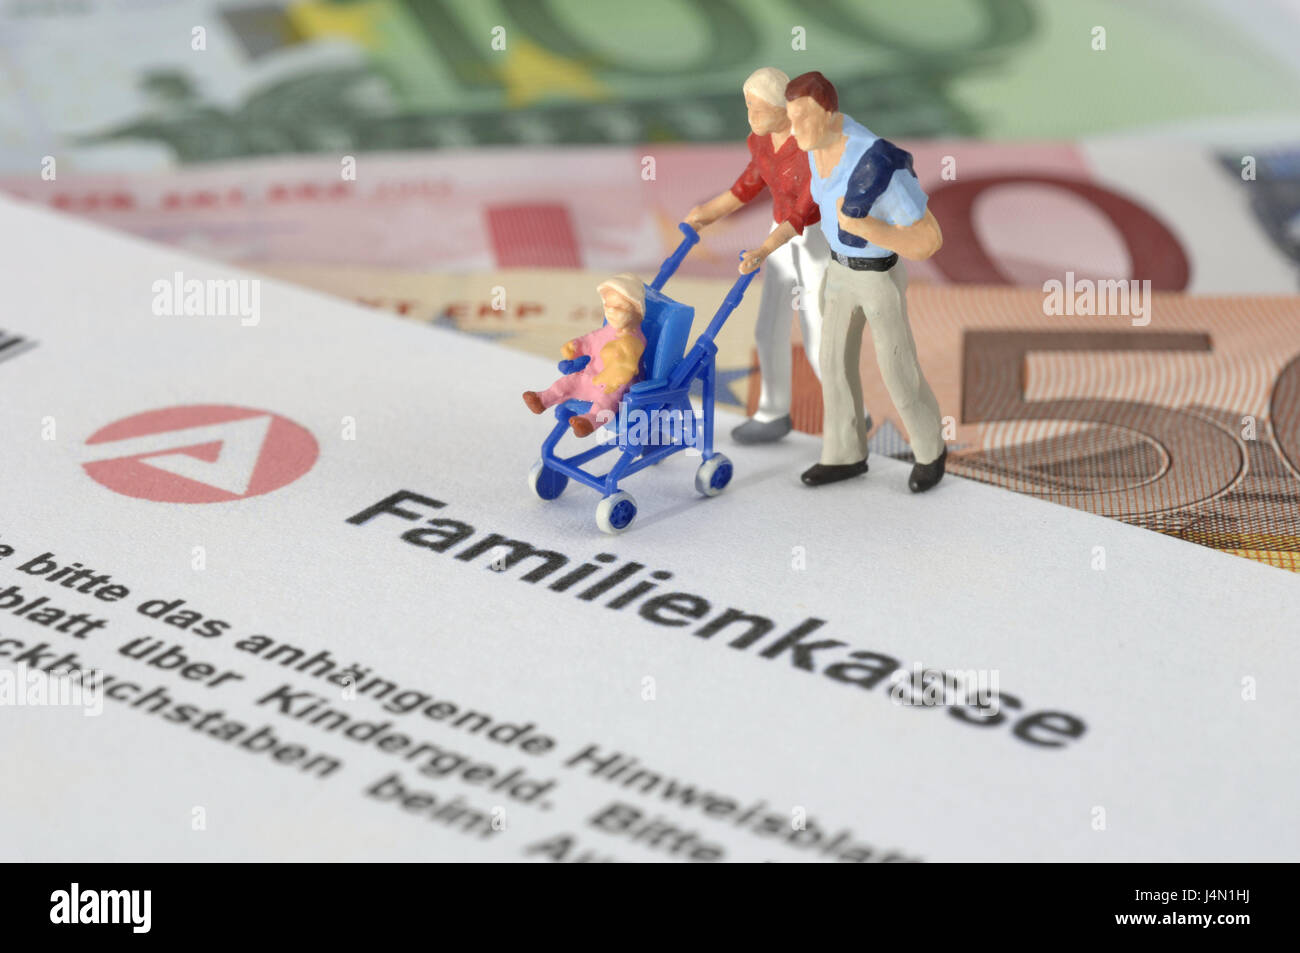 Form, family cash box, characters, family, child benefit, parental money, icon, application, request form, working - Stock Image